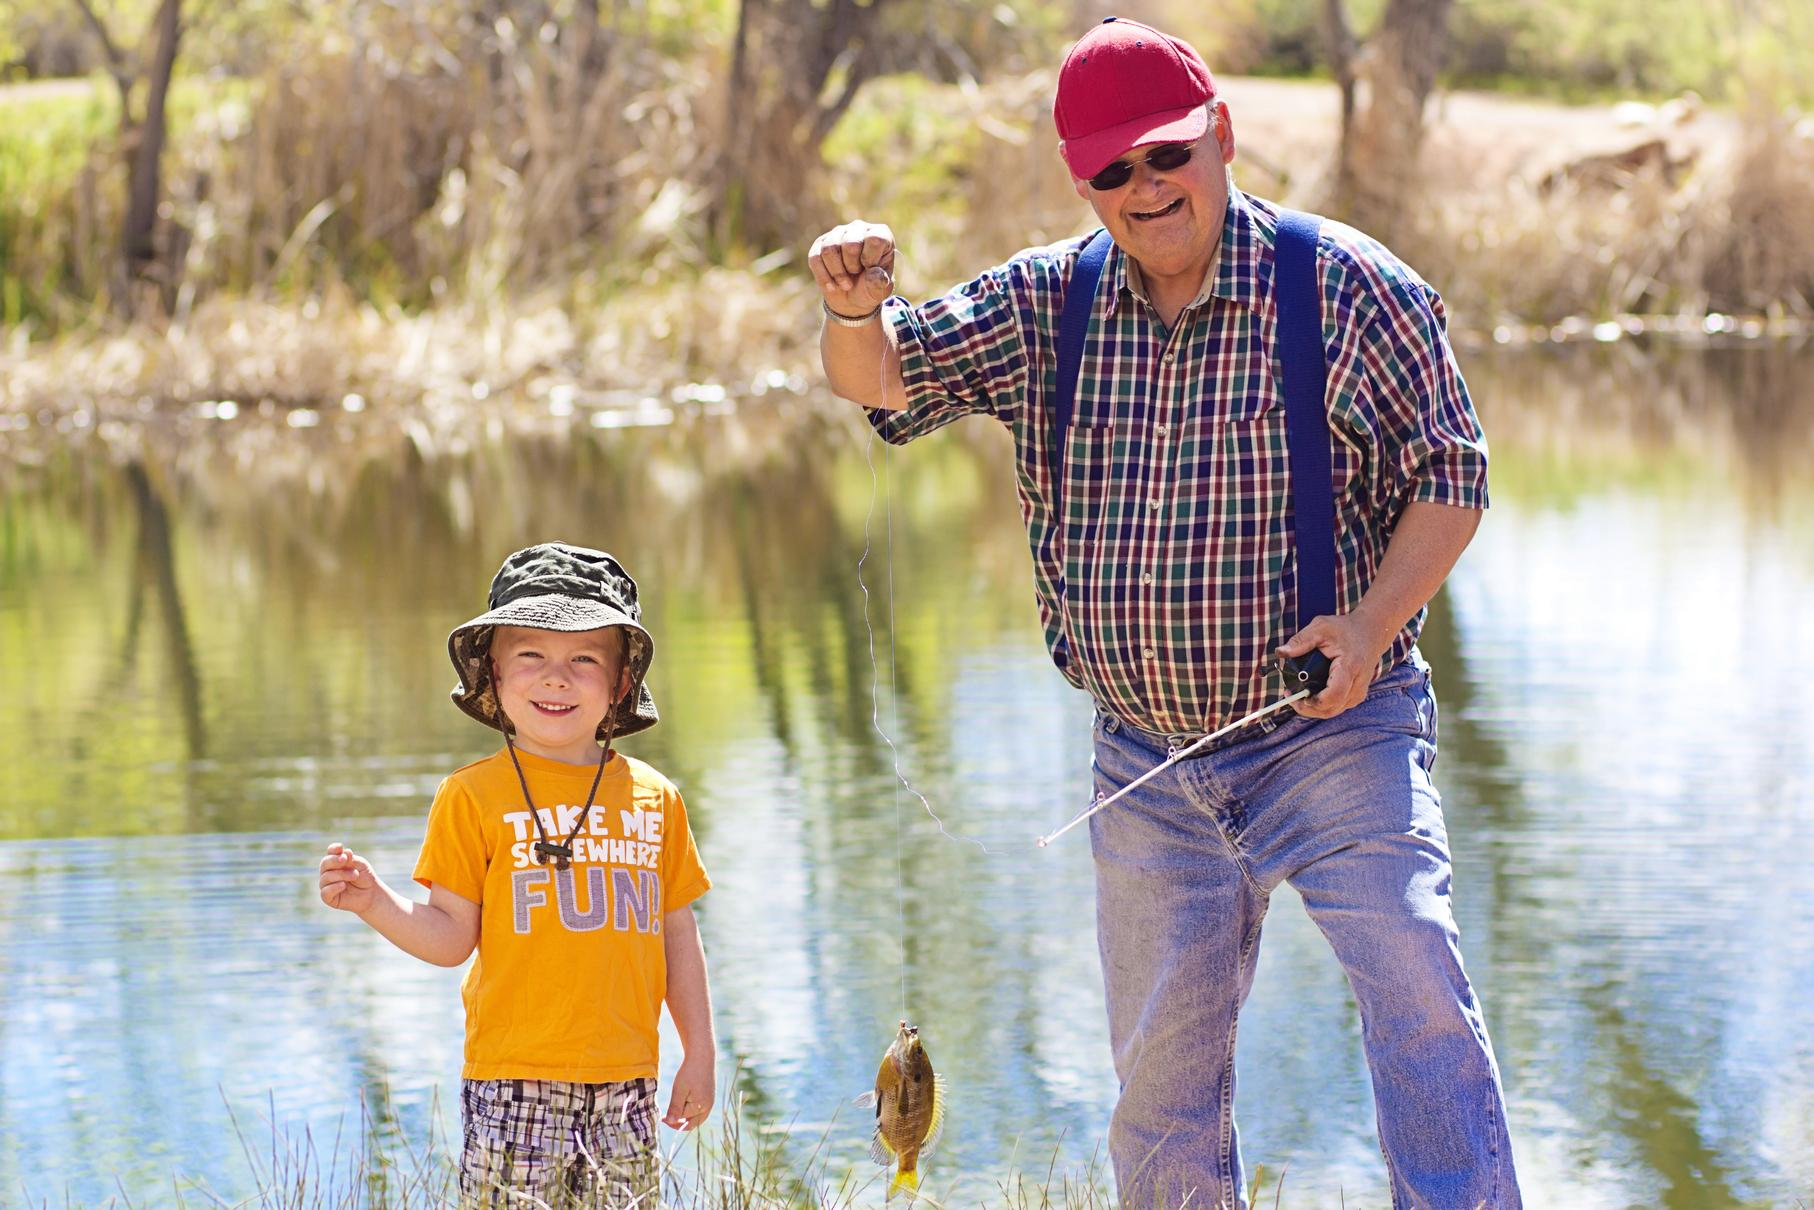 Little boy and his grandfather catching a fish